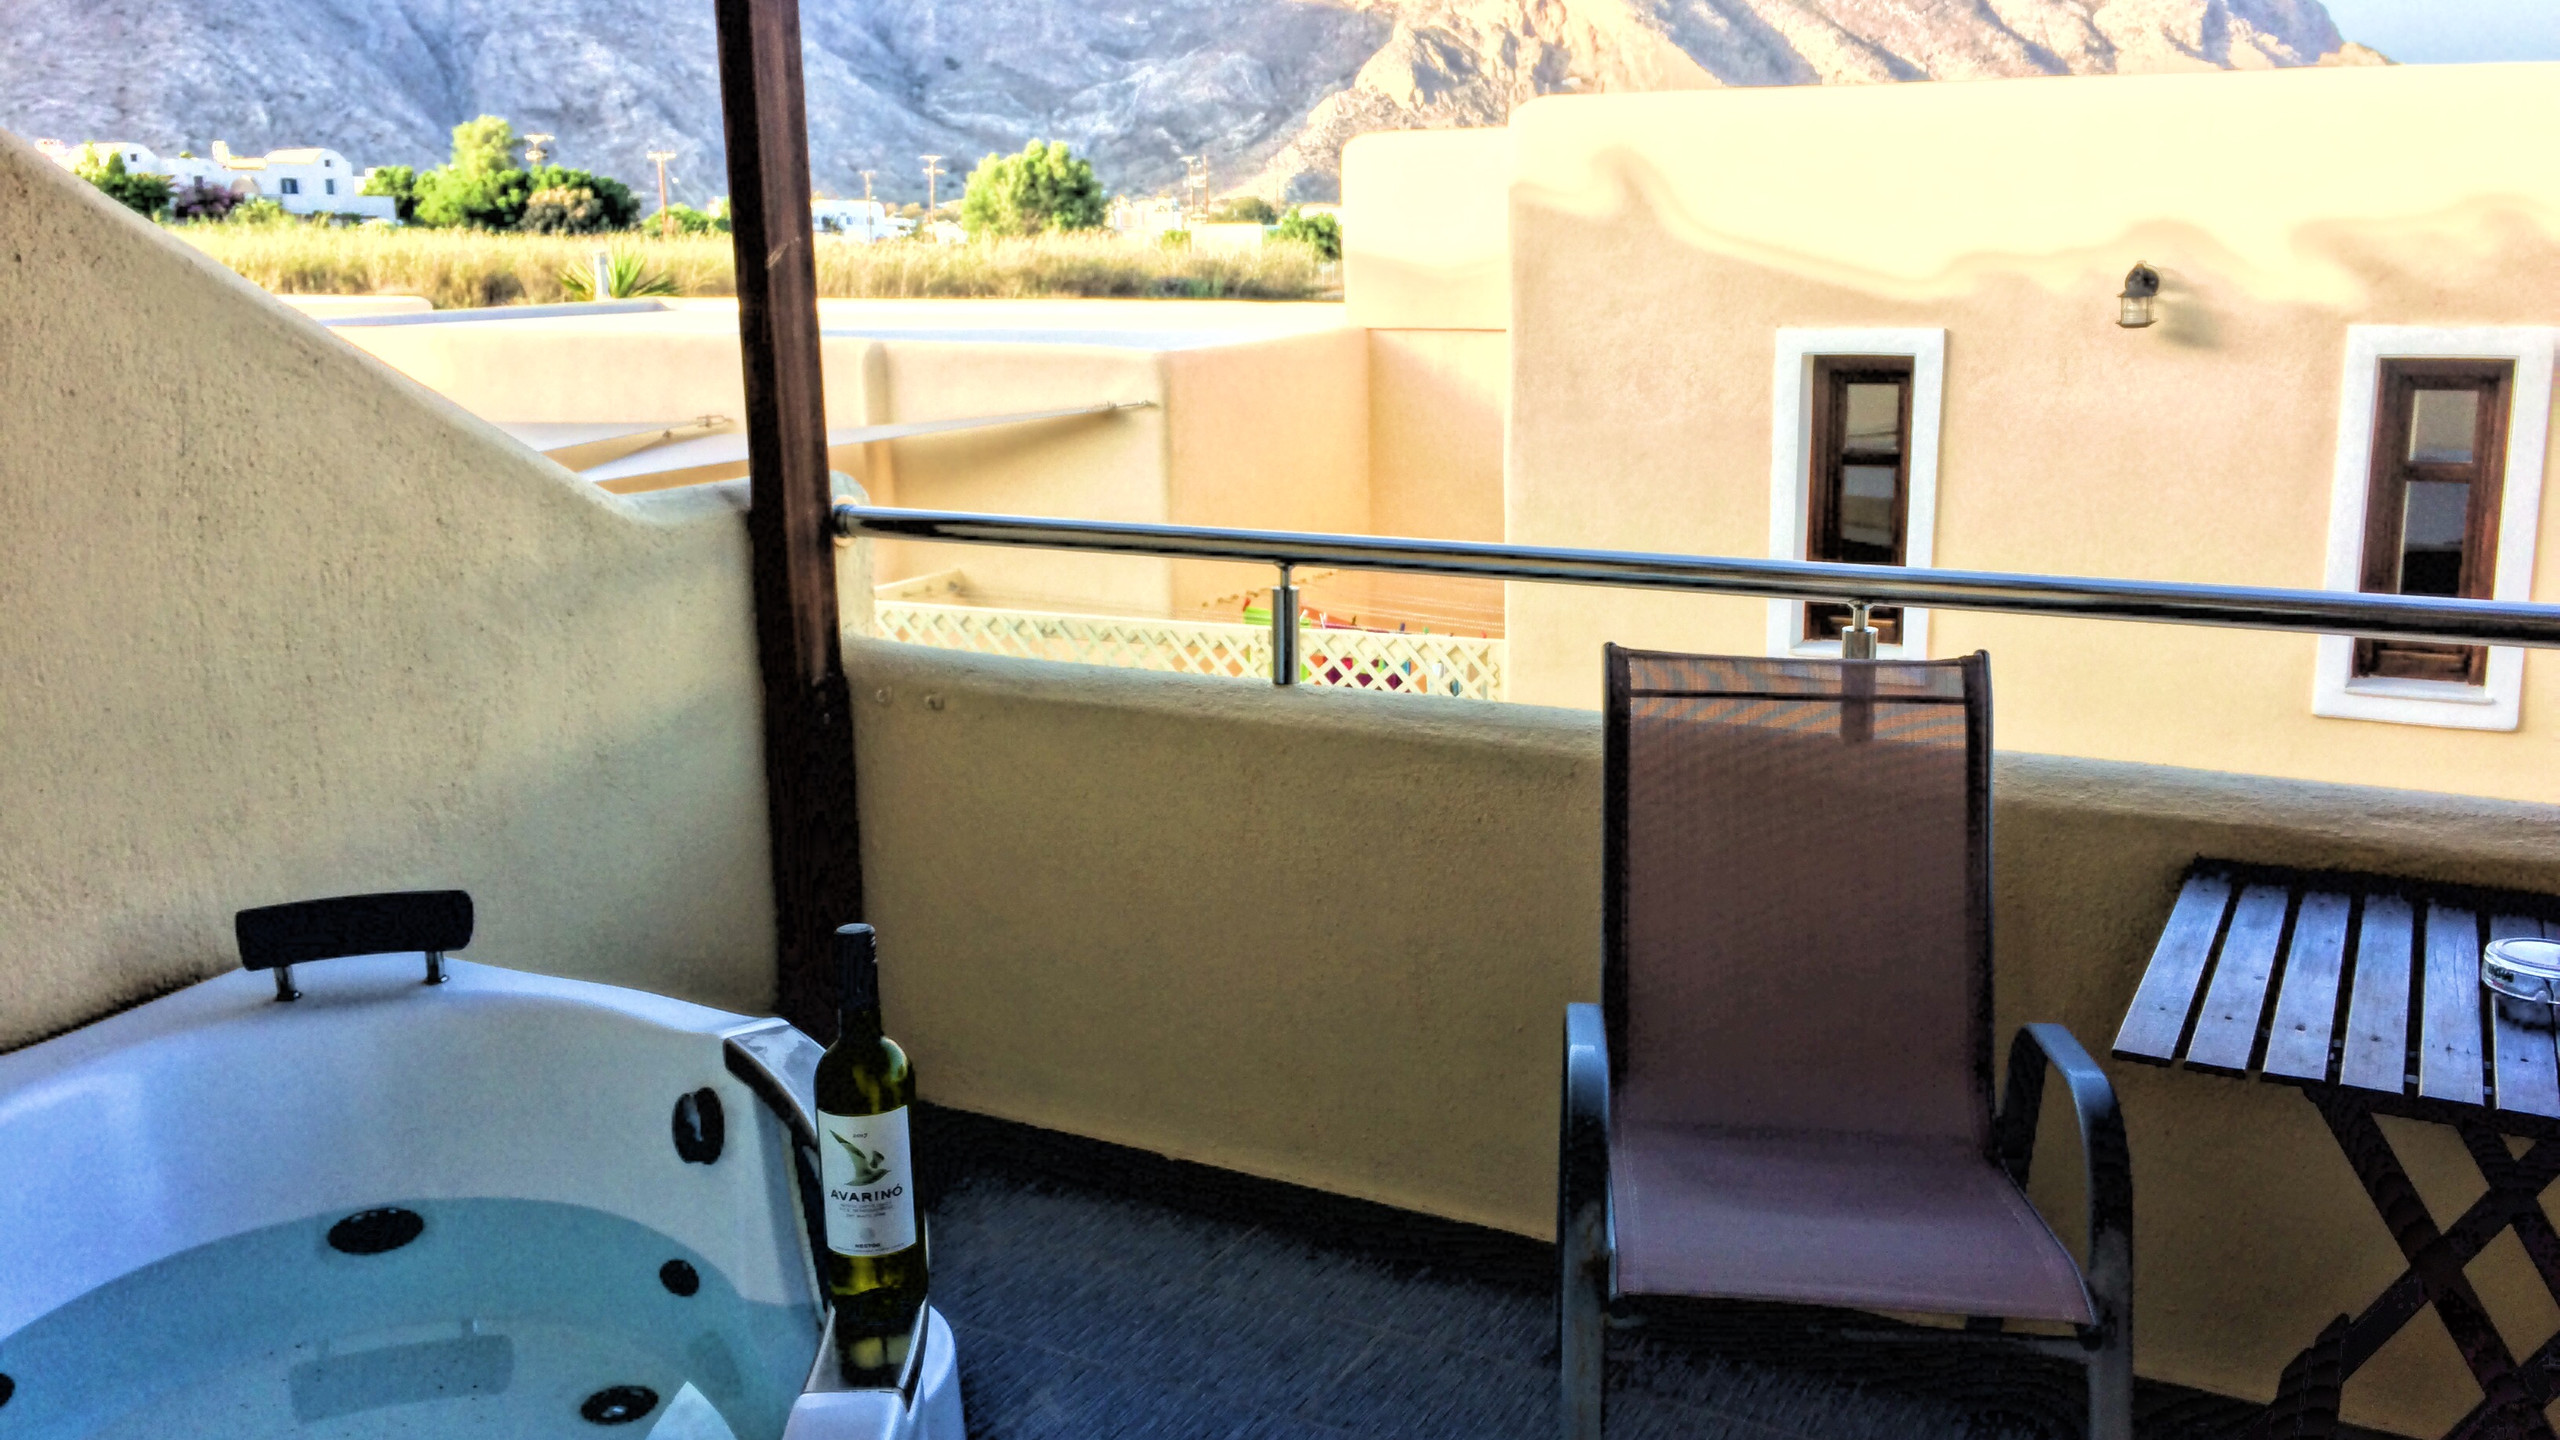 Drinking local wine in our private hot tub in Santorini, Greece. Greek island luxury.